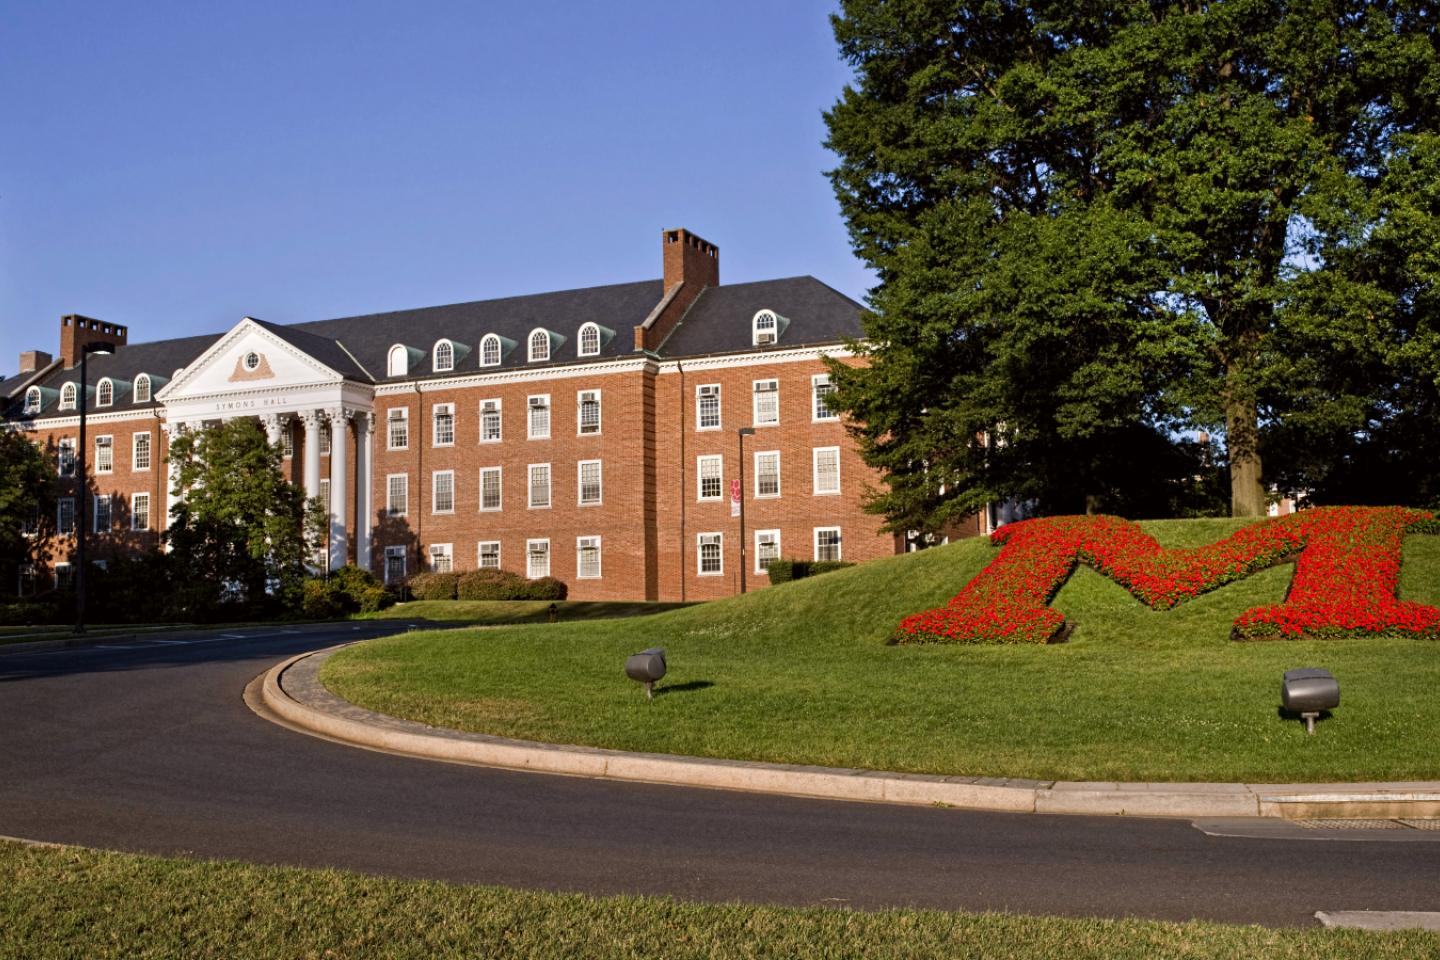 What does it cost to attend The University of Maryland, College Park?